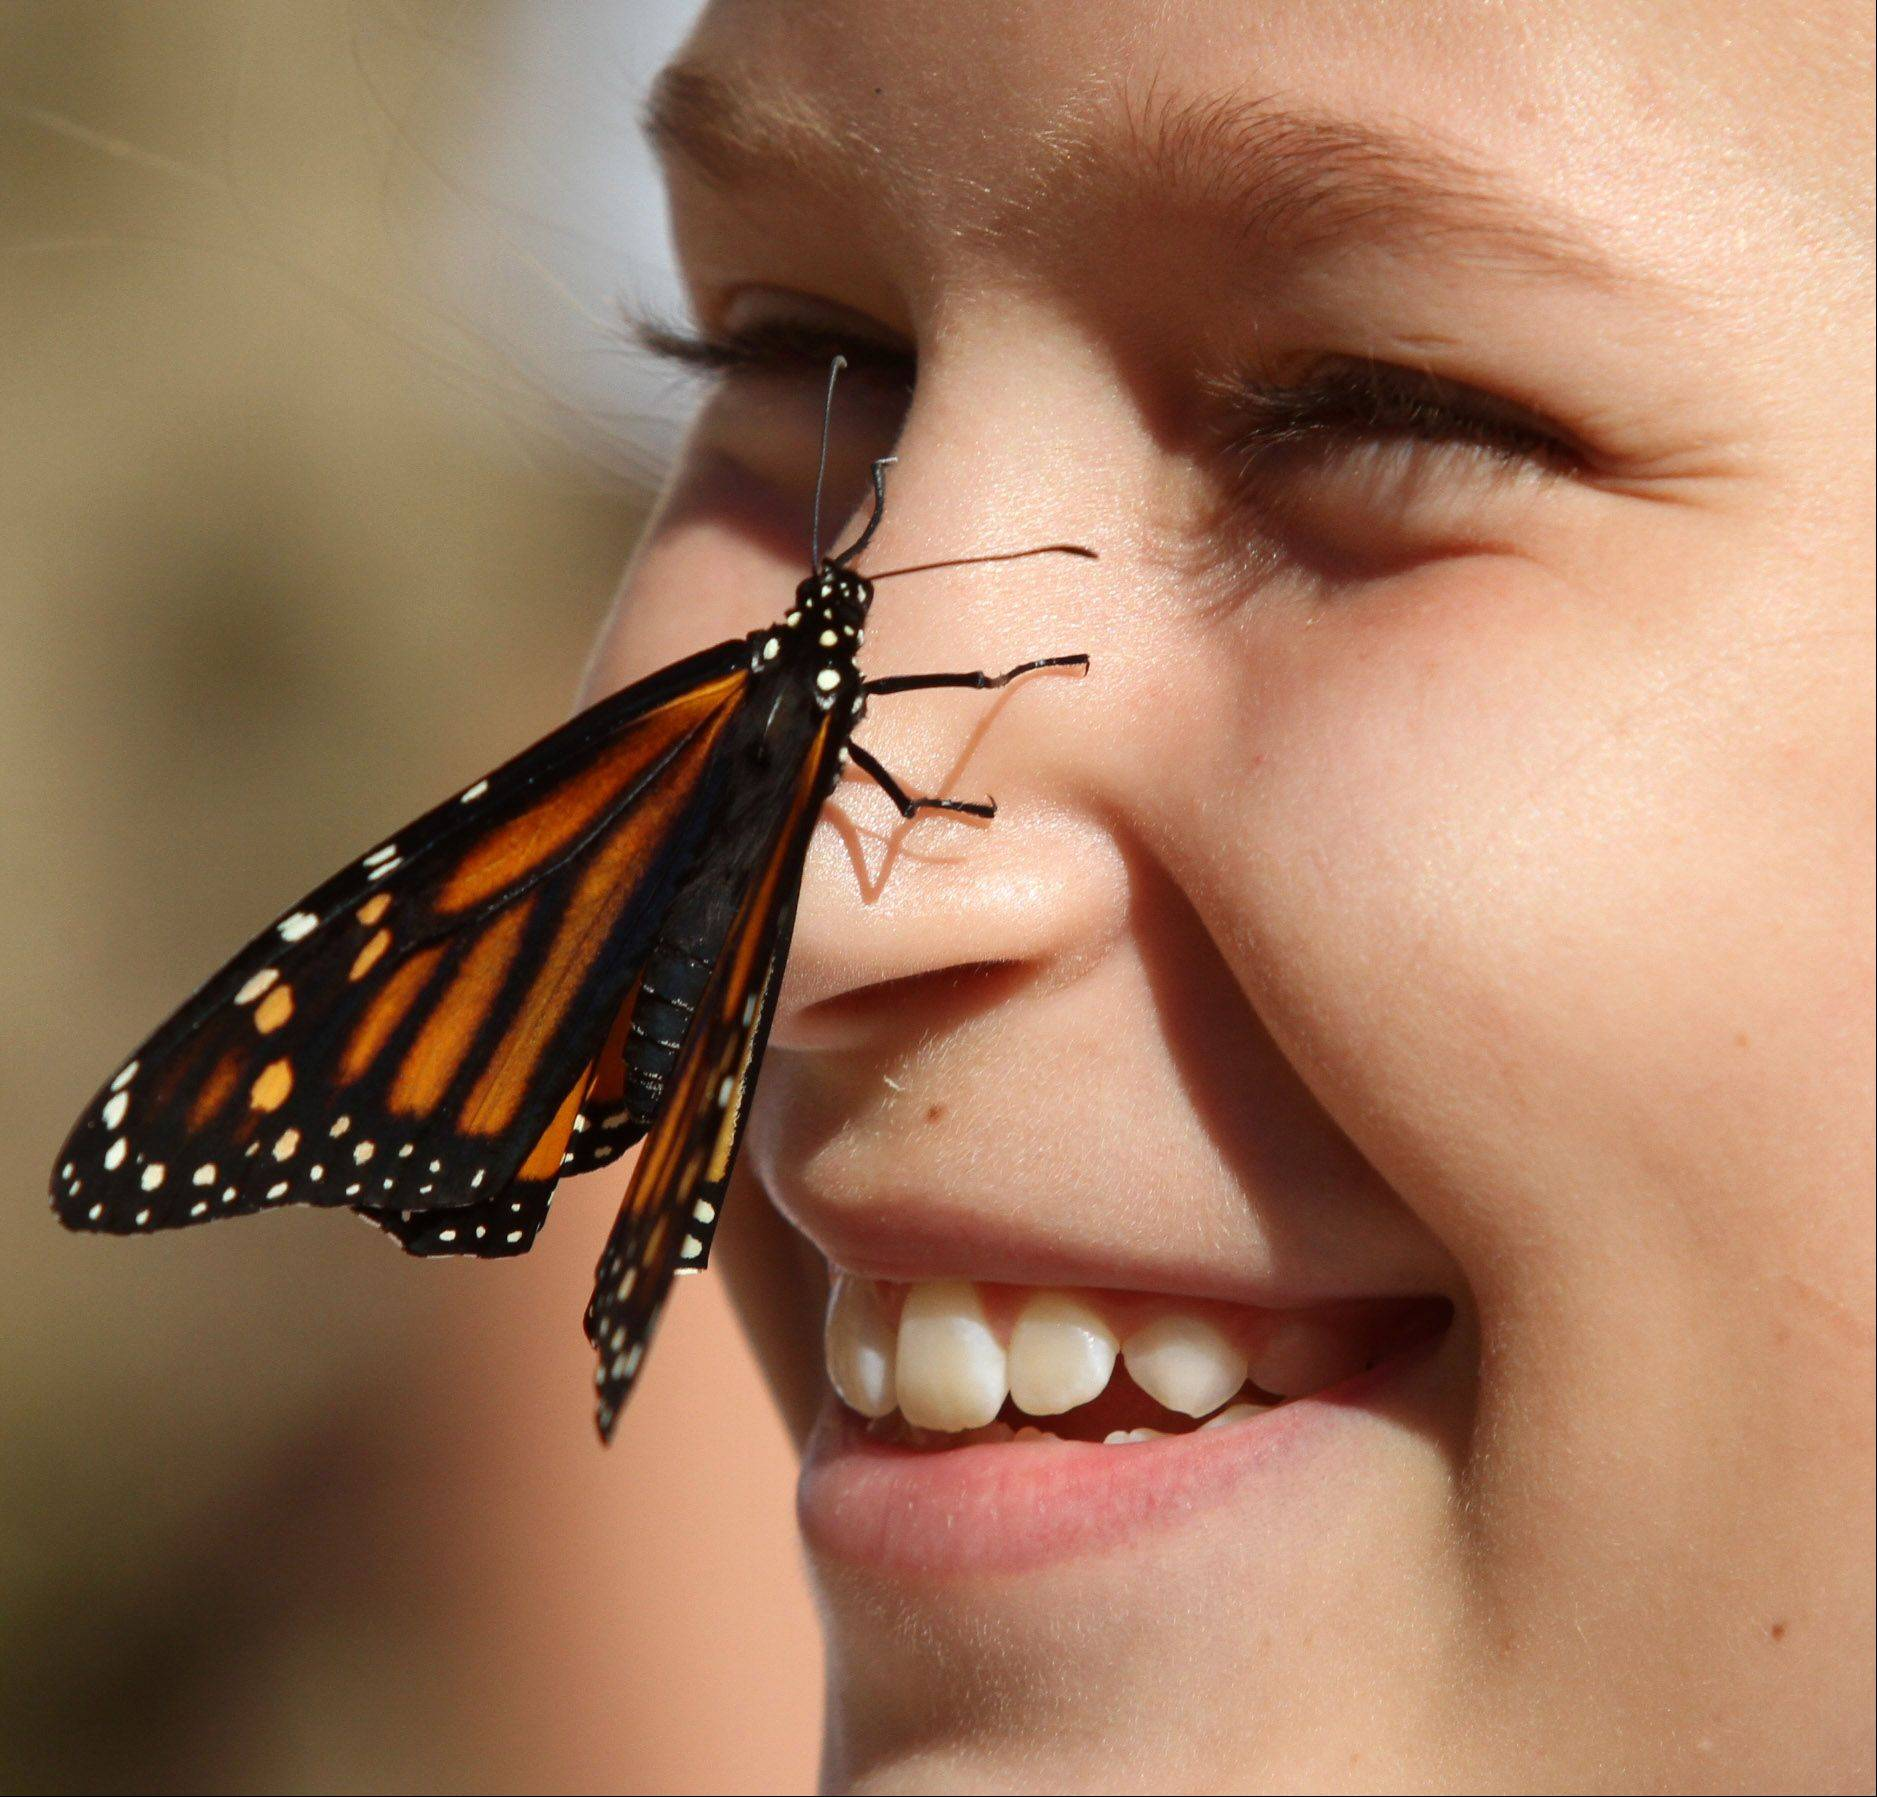 Mackenzie Kamysz is visited by the newly-released monarch butterfly.